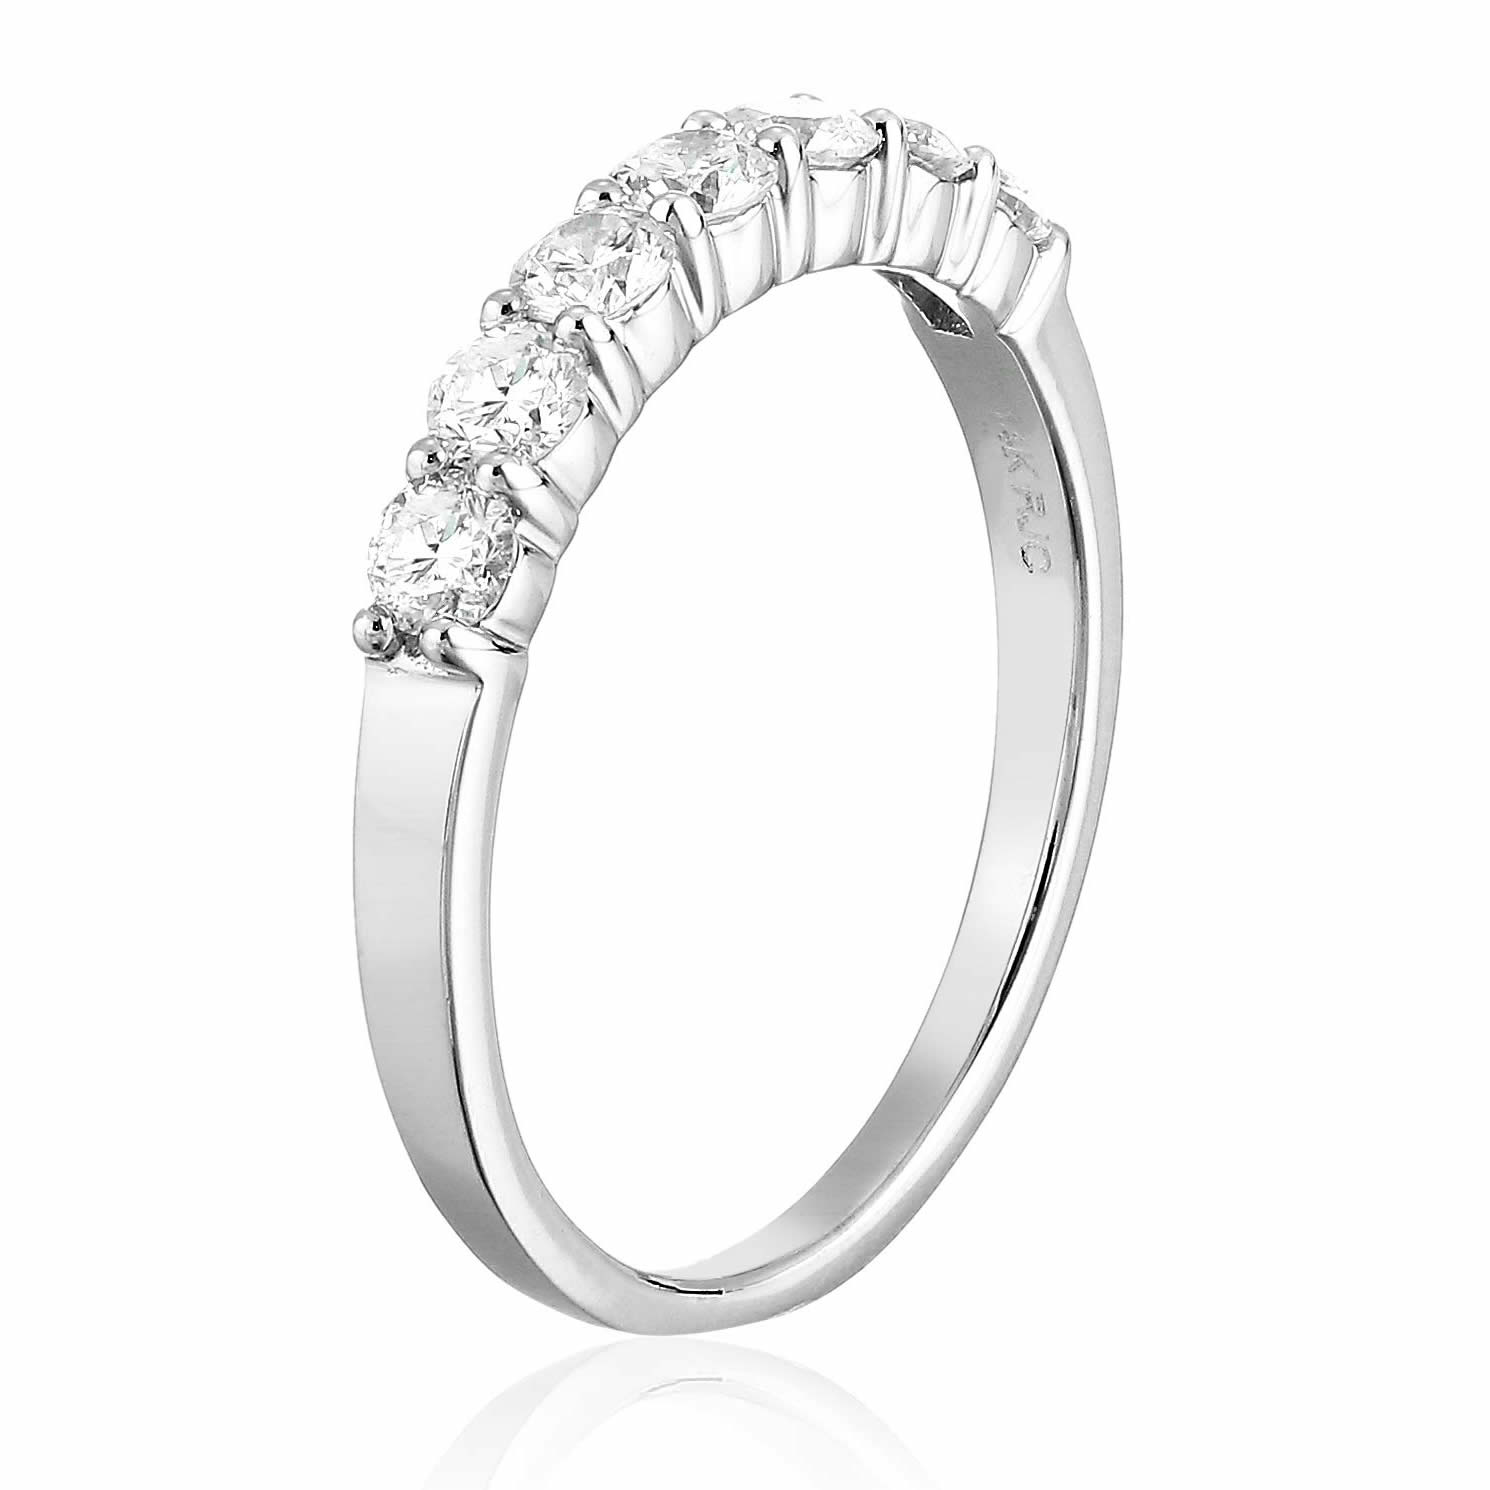 1-2-cttw-Certified-SI1-SI2-7-Stone-Diamond-Wedding-Band-14K-Gold